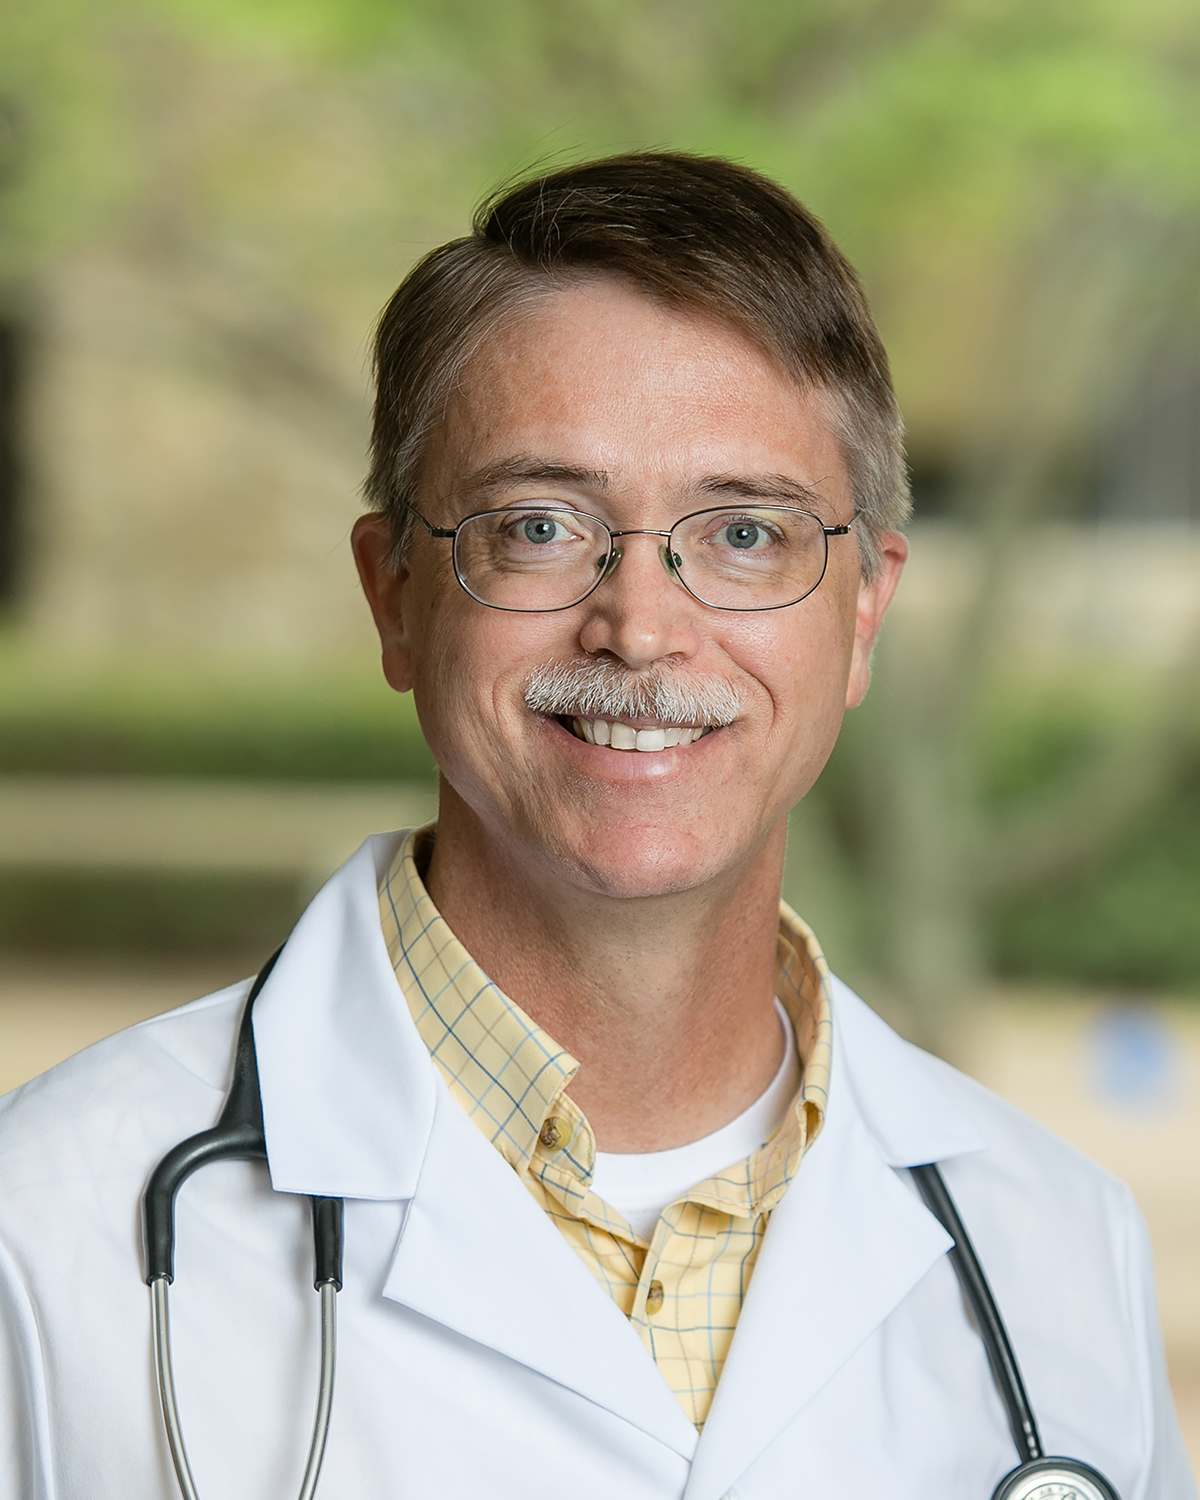 Colin Bailey, MD